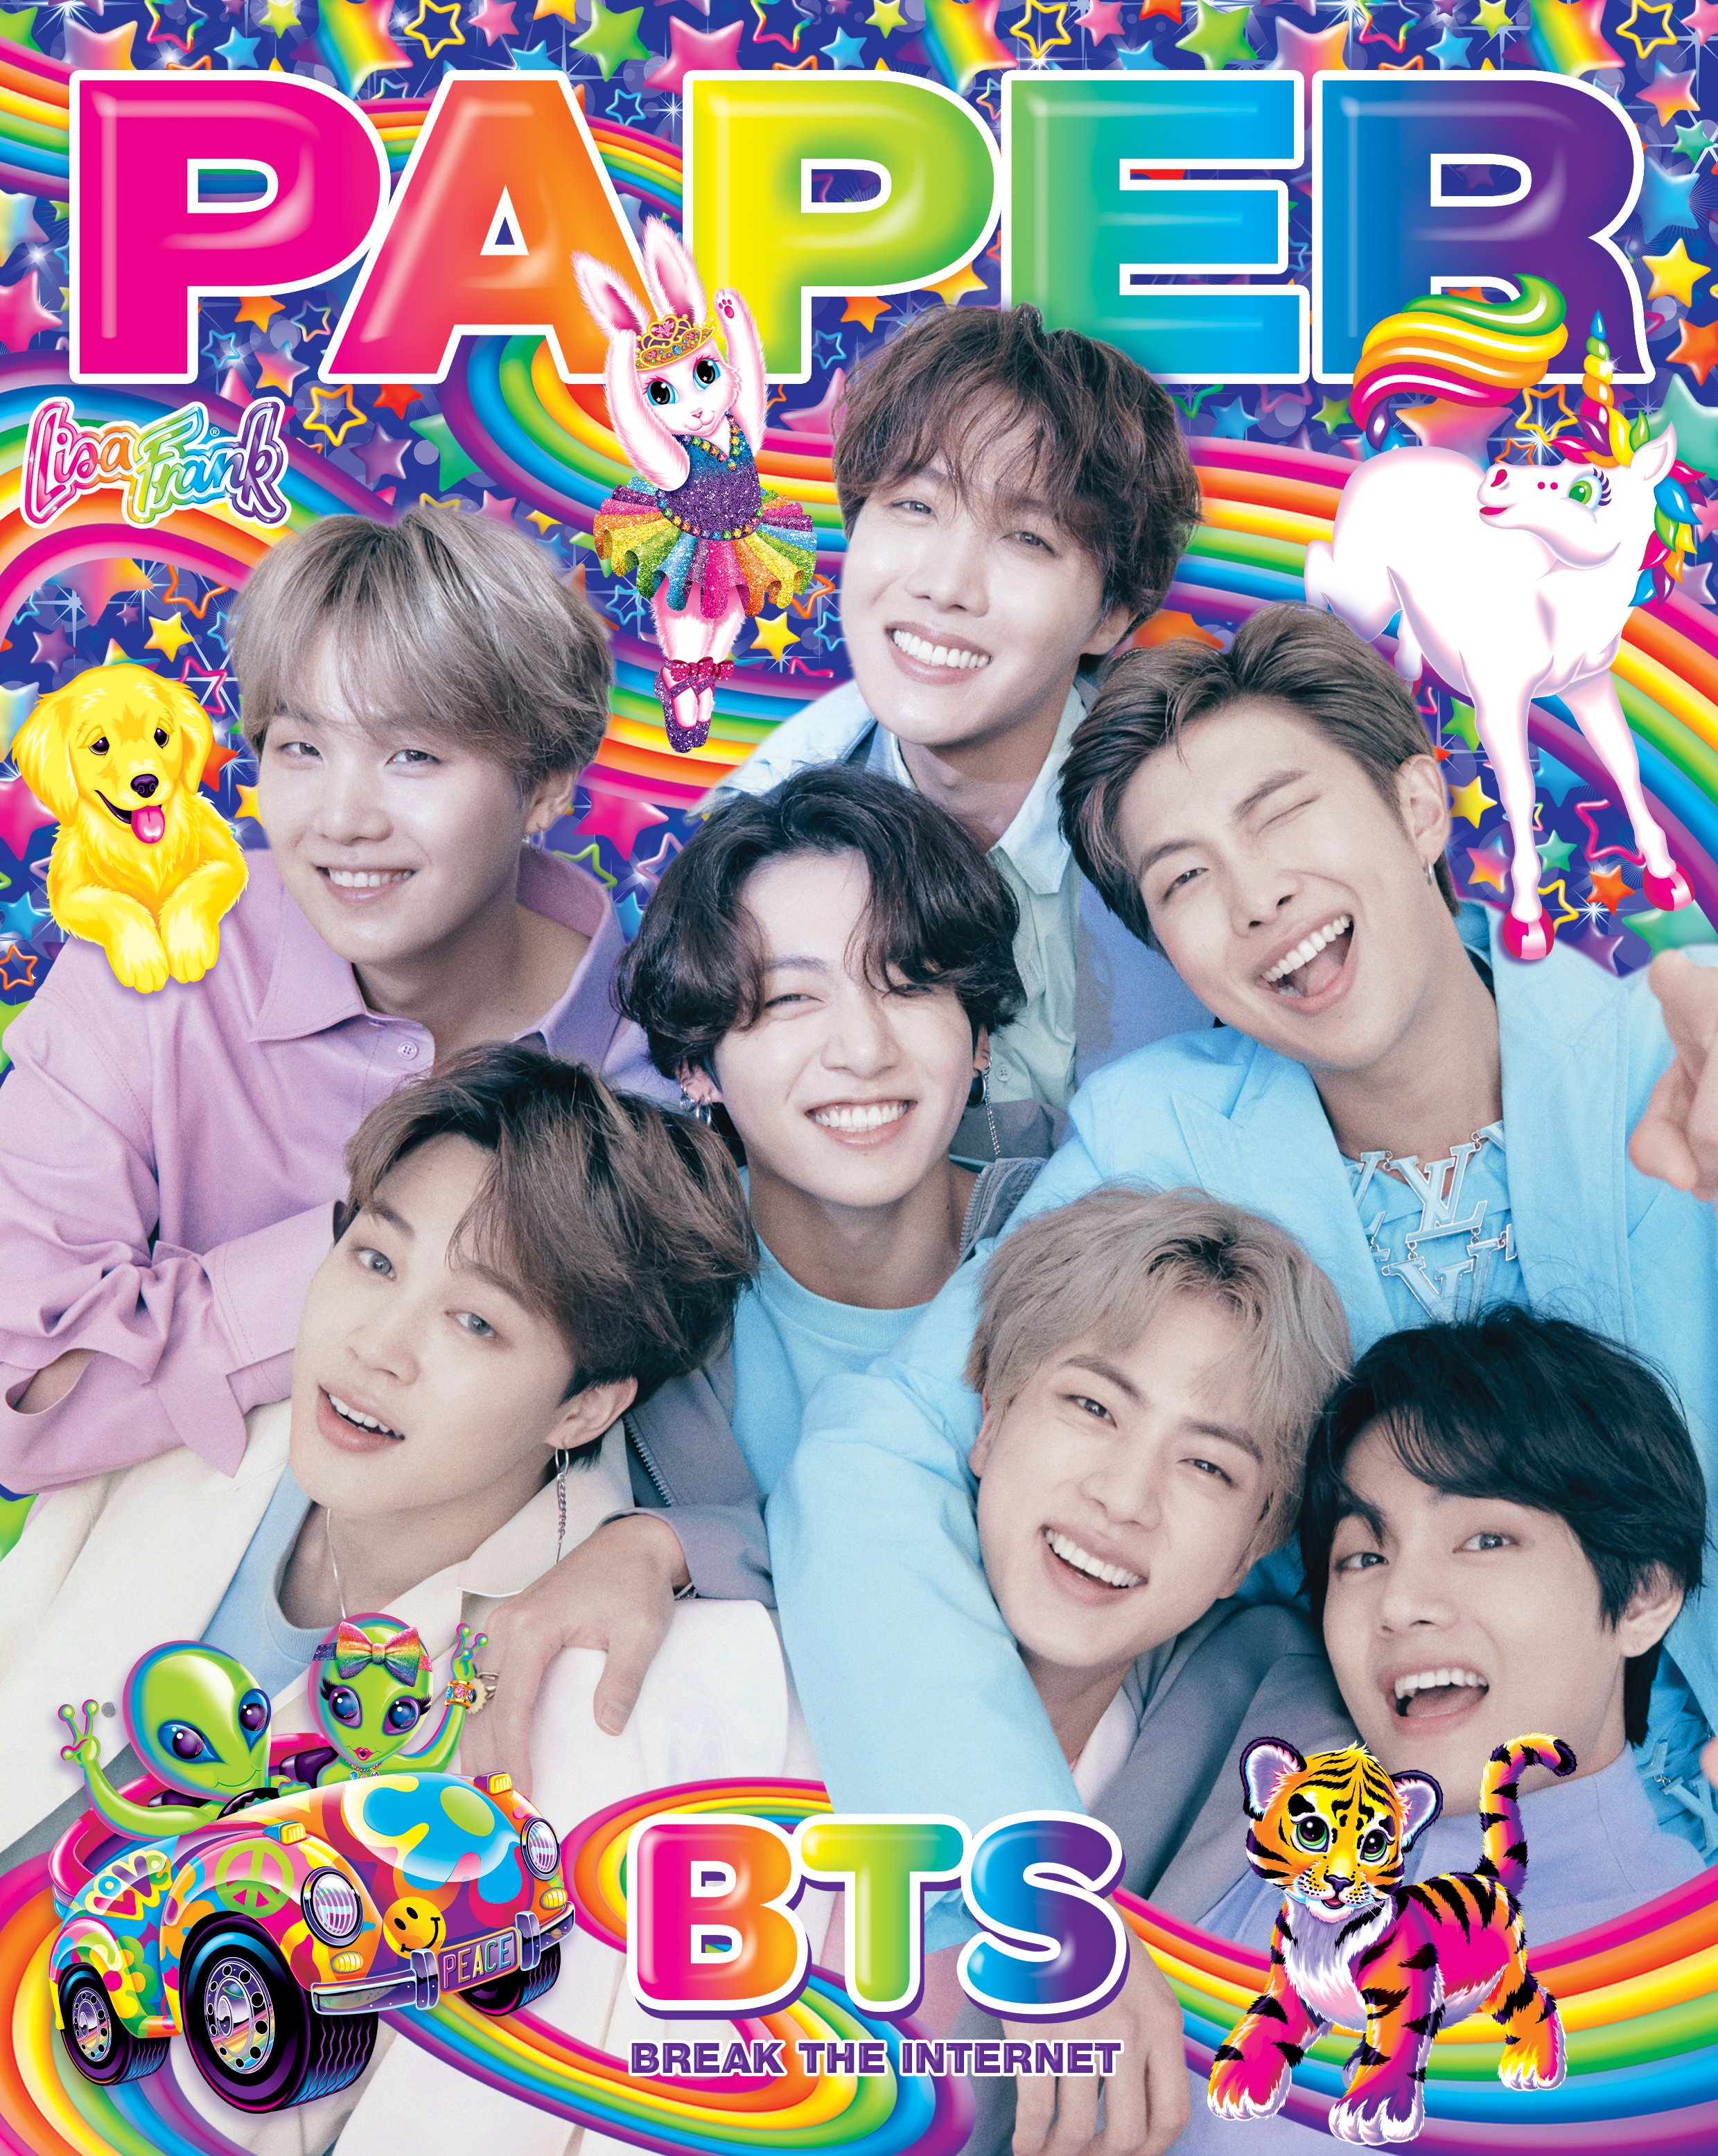 Lisa Frank collaborated with BTS 'breaks the internet' on Paper magazine cover